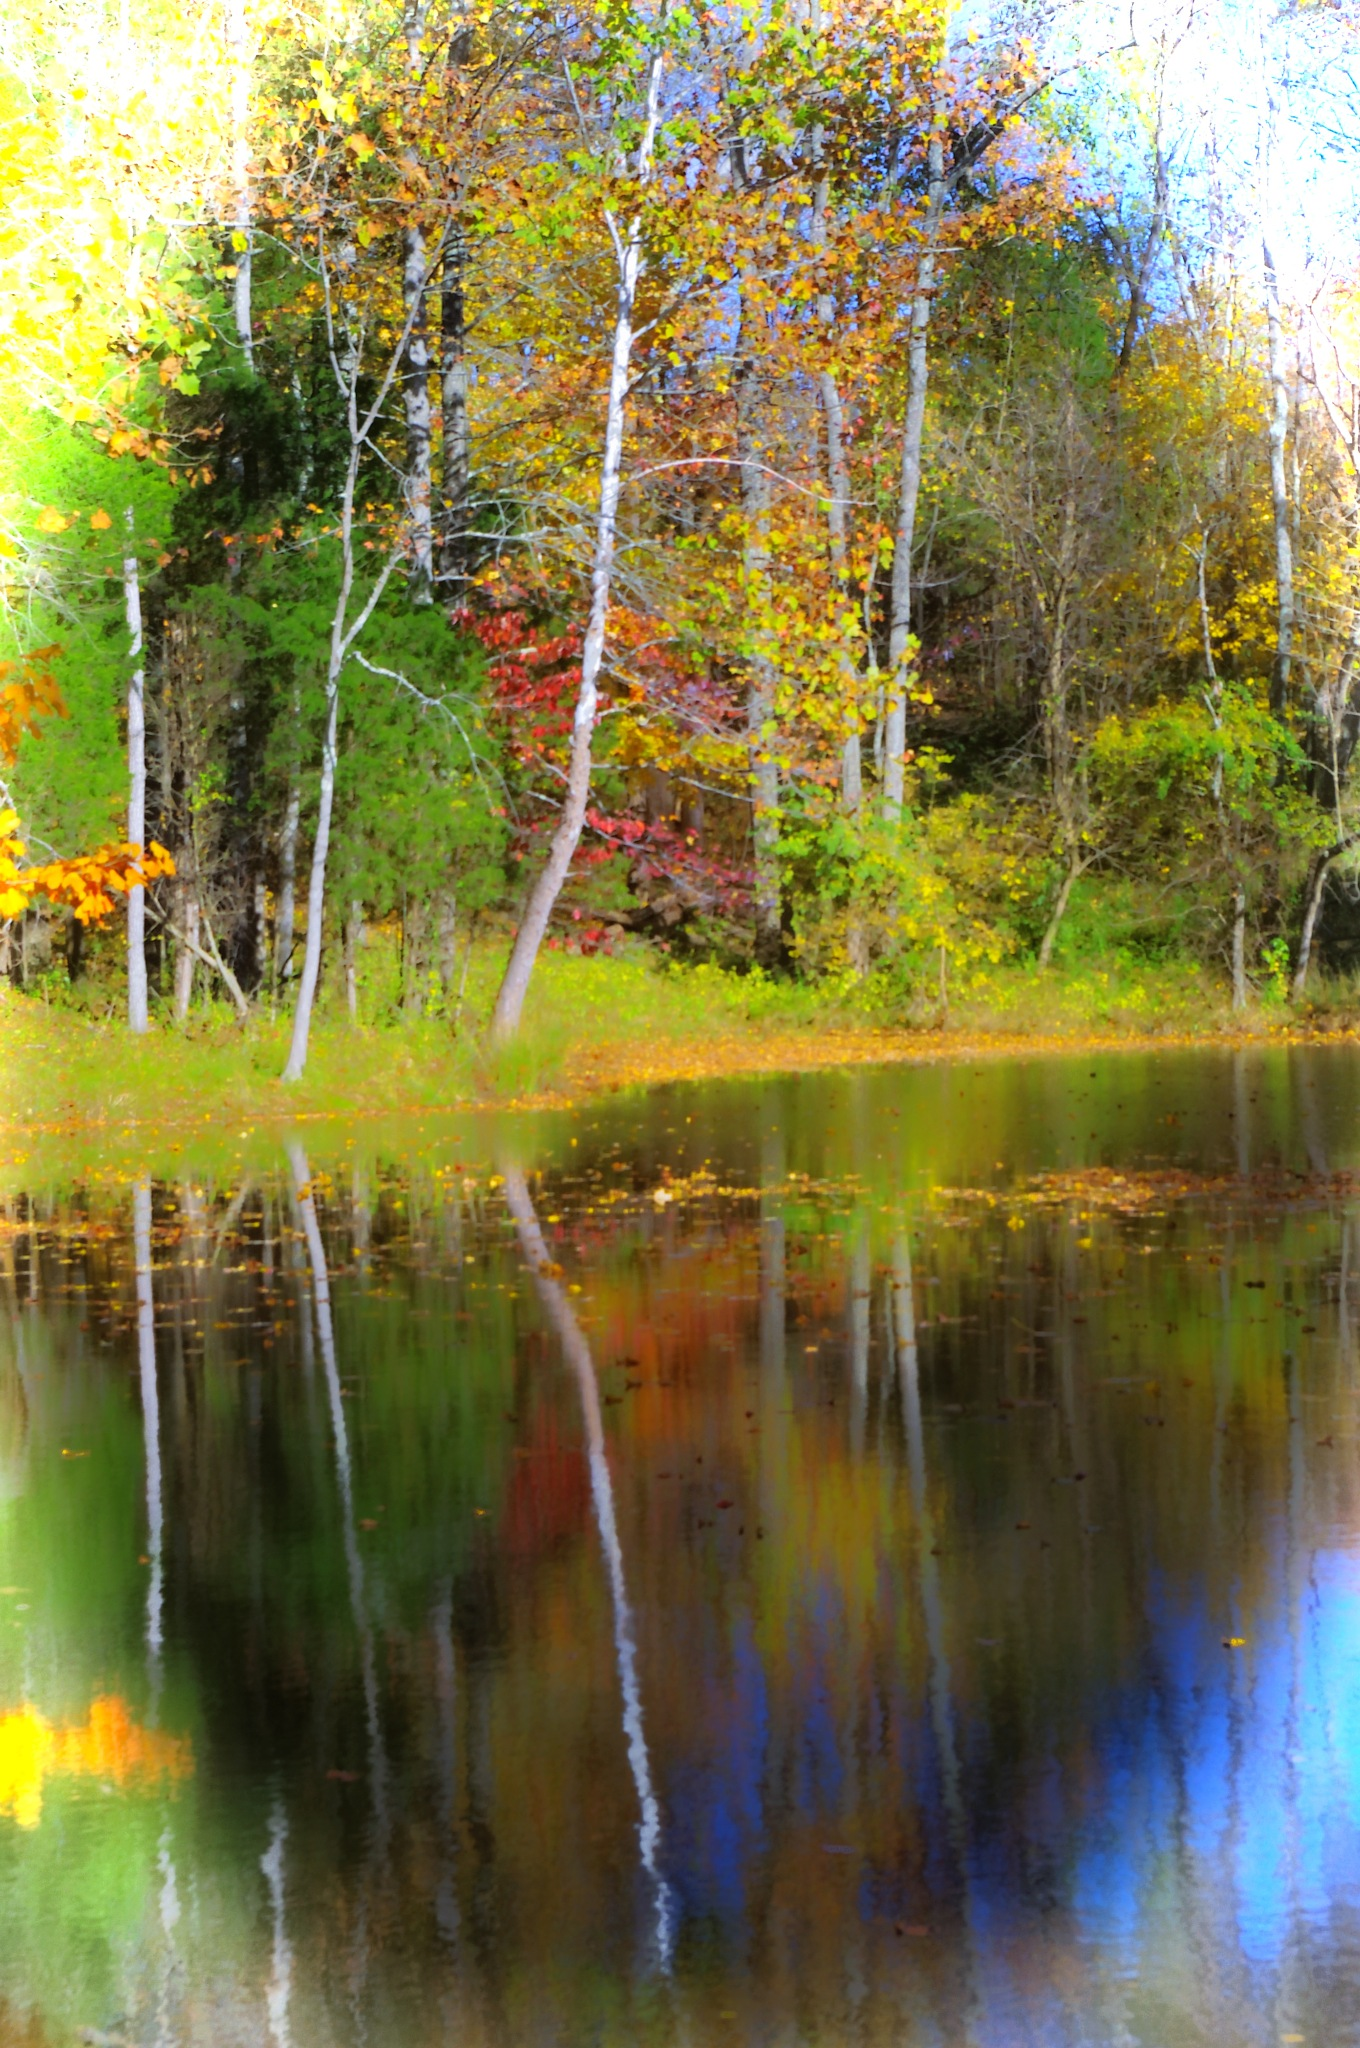 THE BEAUTY OF FALL by Bonnie Rhoades